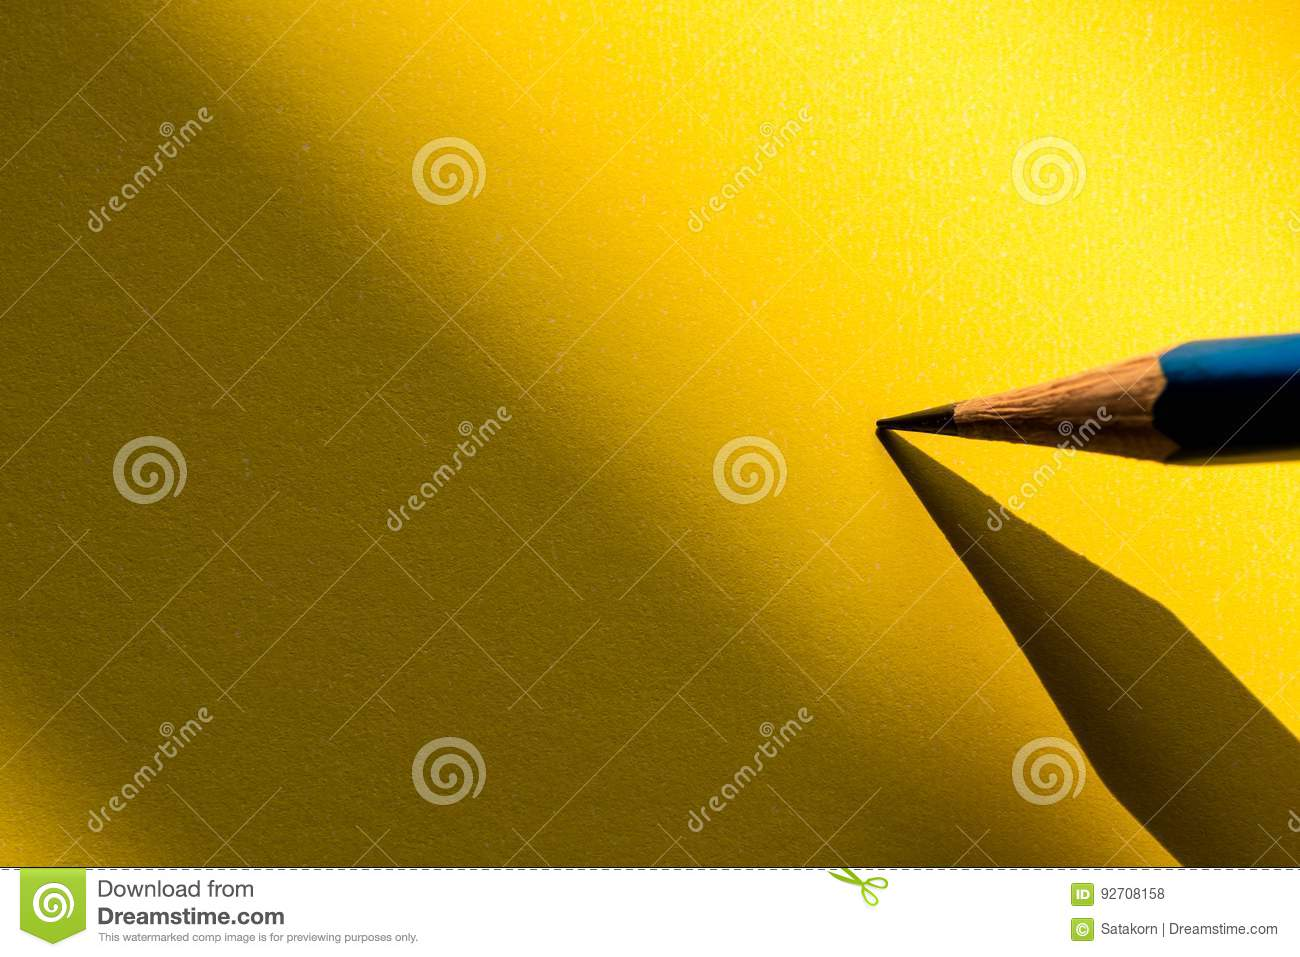 Download Pencil Holding To Write On The Paper In Shadow Stock Photo - Image of holding, shadow: 92708158